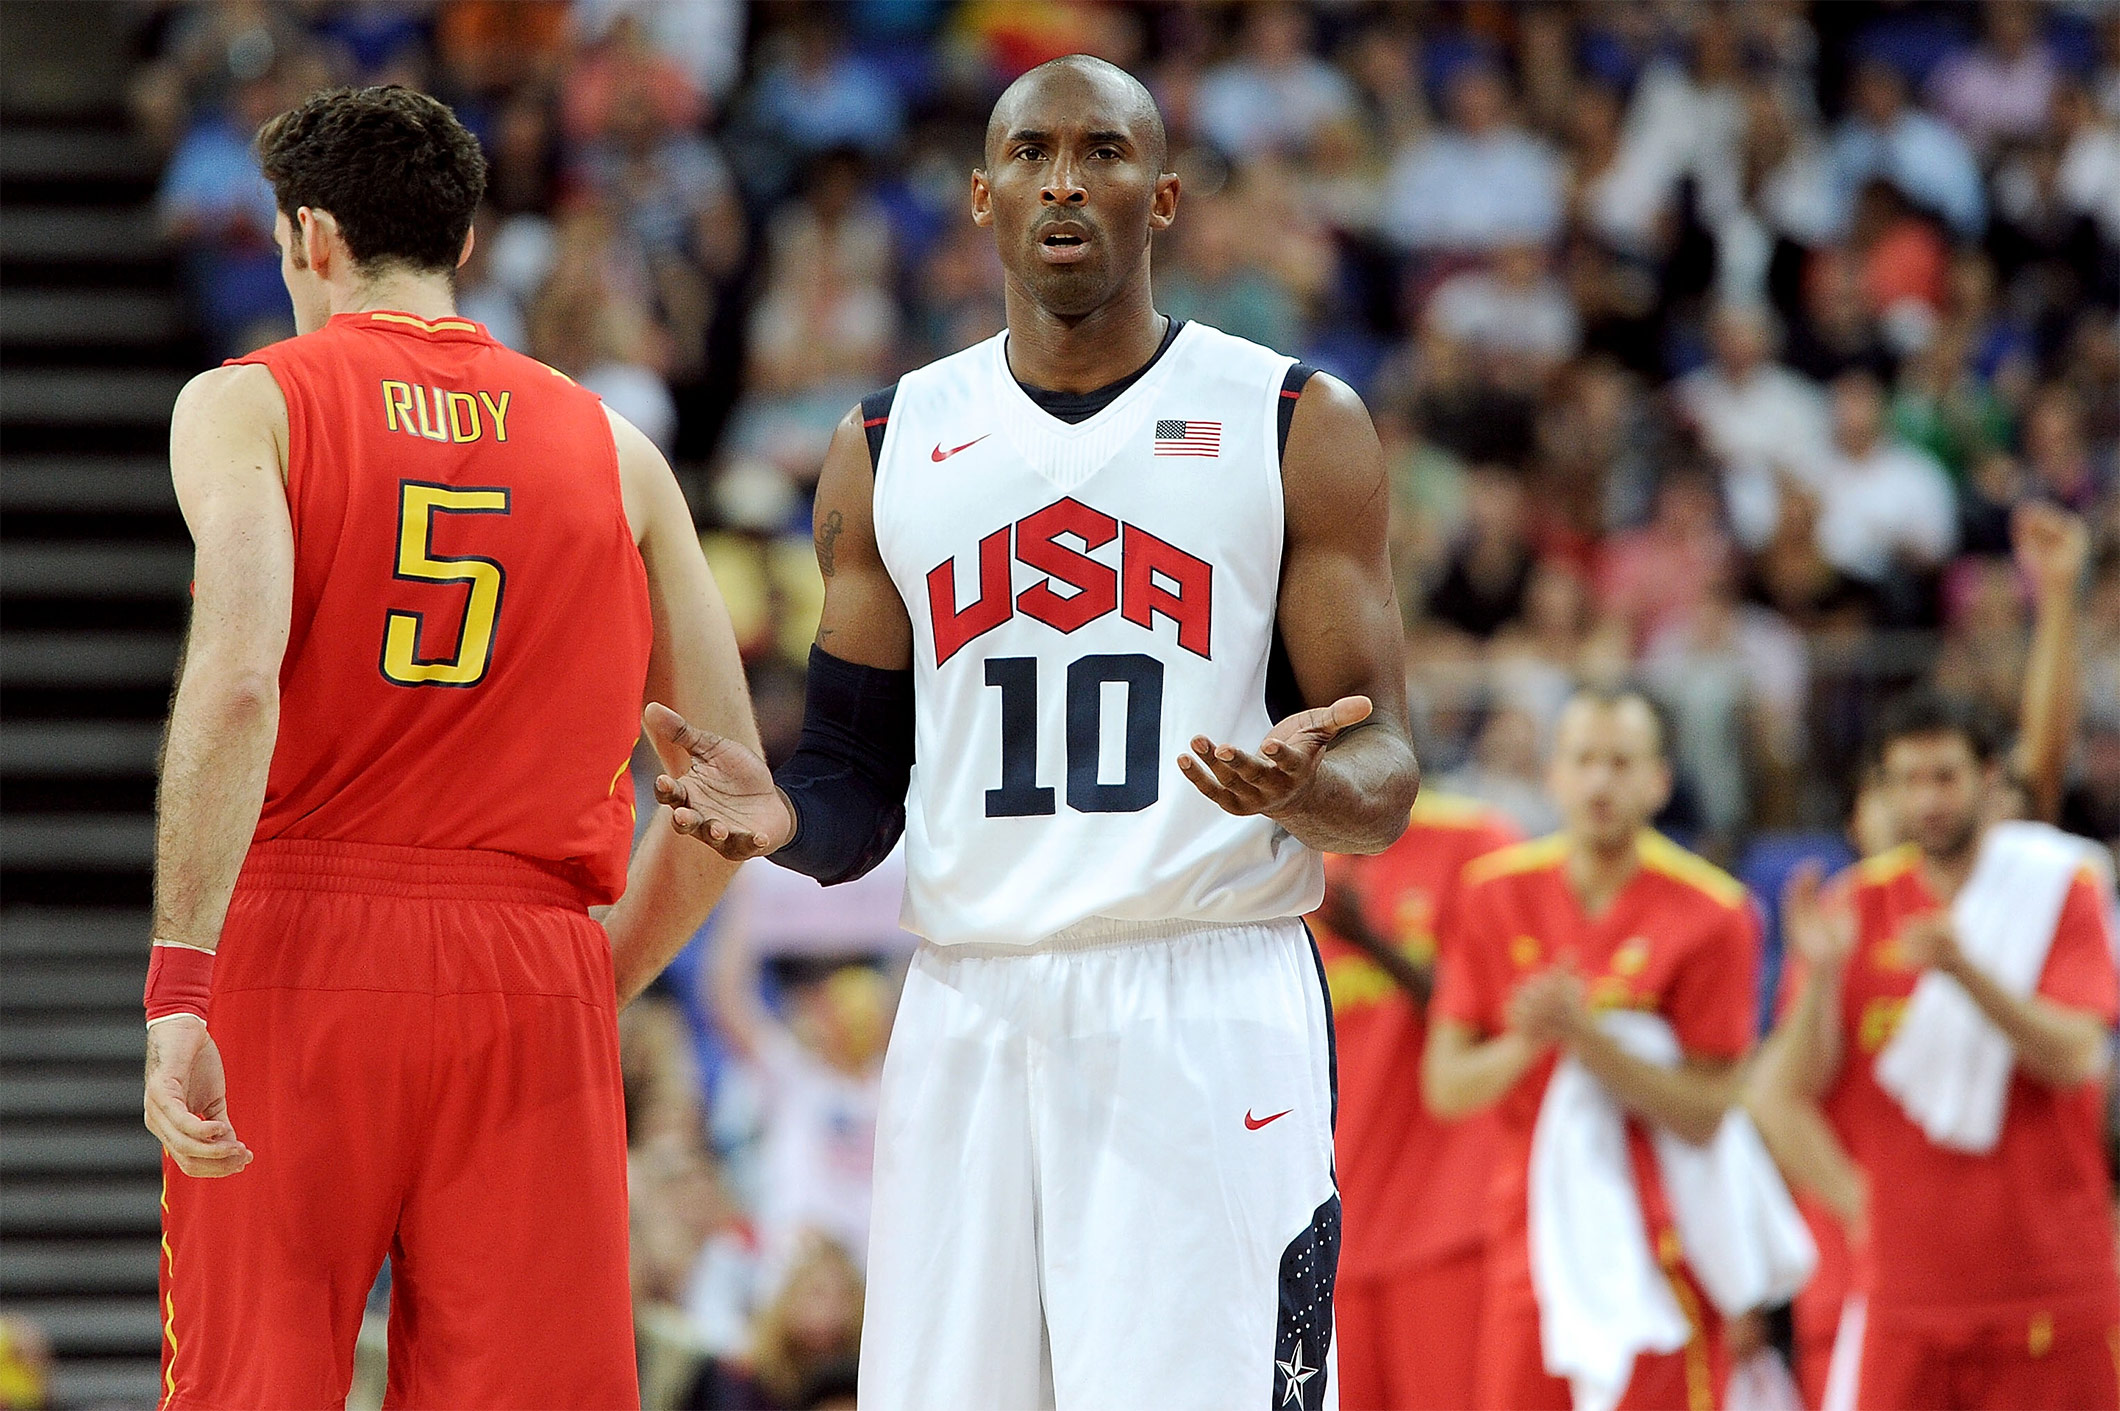 Kobe Bryant #10 of the United States reacts to a foul call during the Men's Basketball gold medal game between the United States and Spain on Day 16 of the London 2012 Olympics Games on August 12, 2012 in London, England.